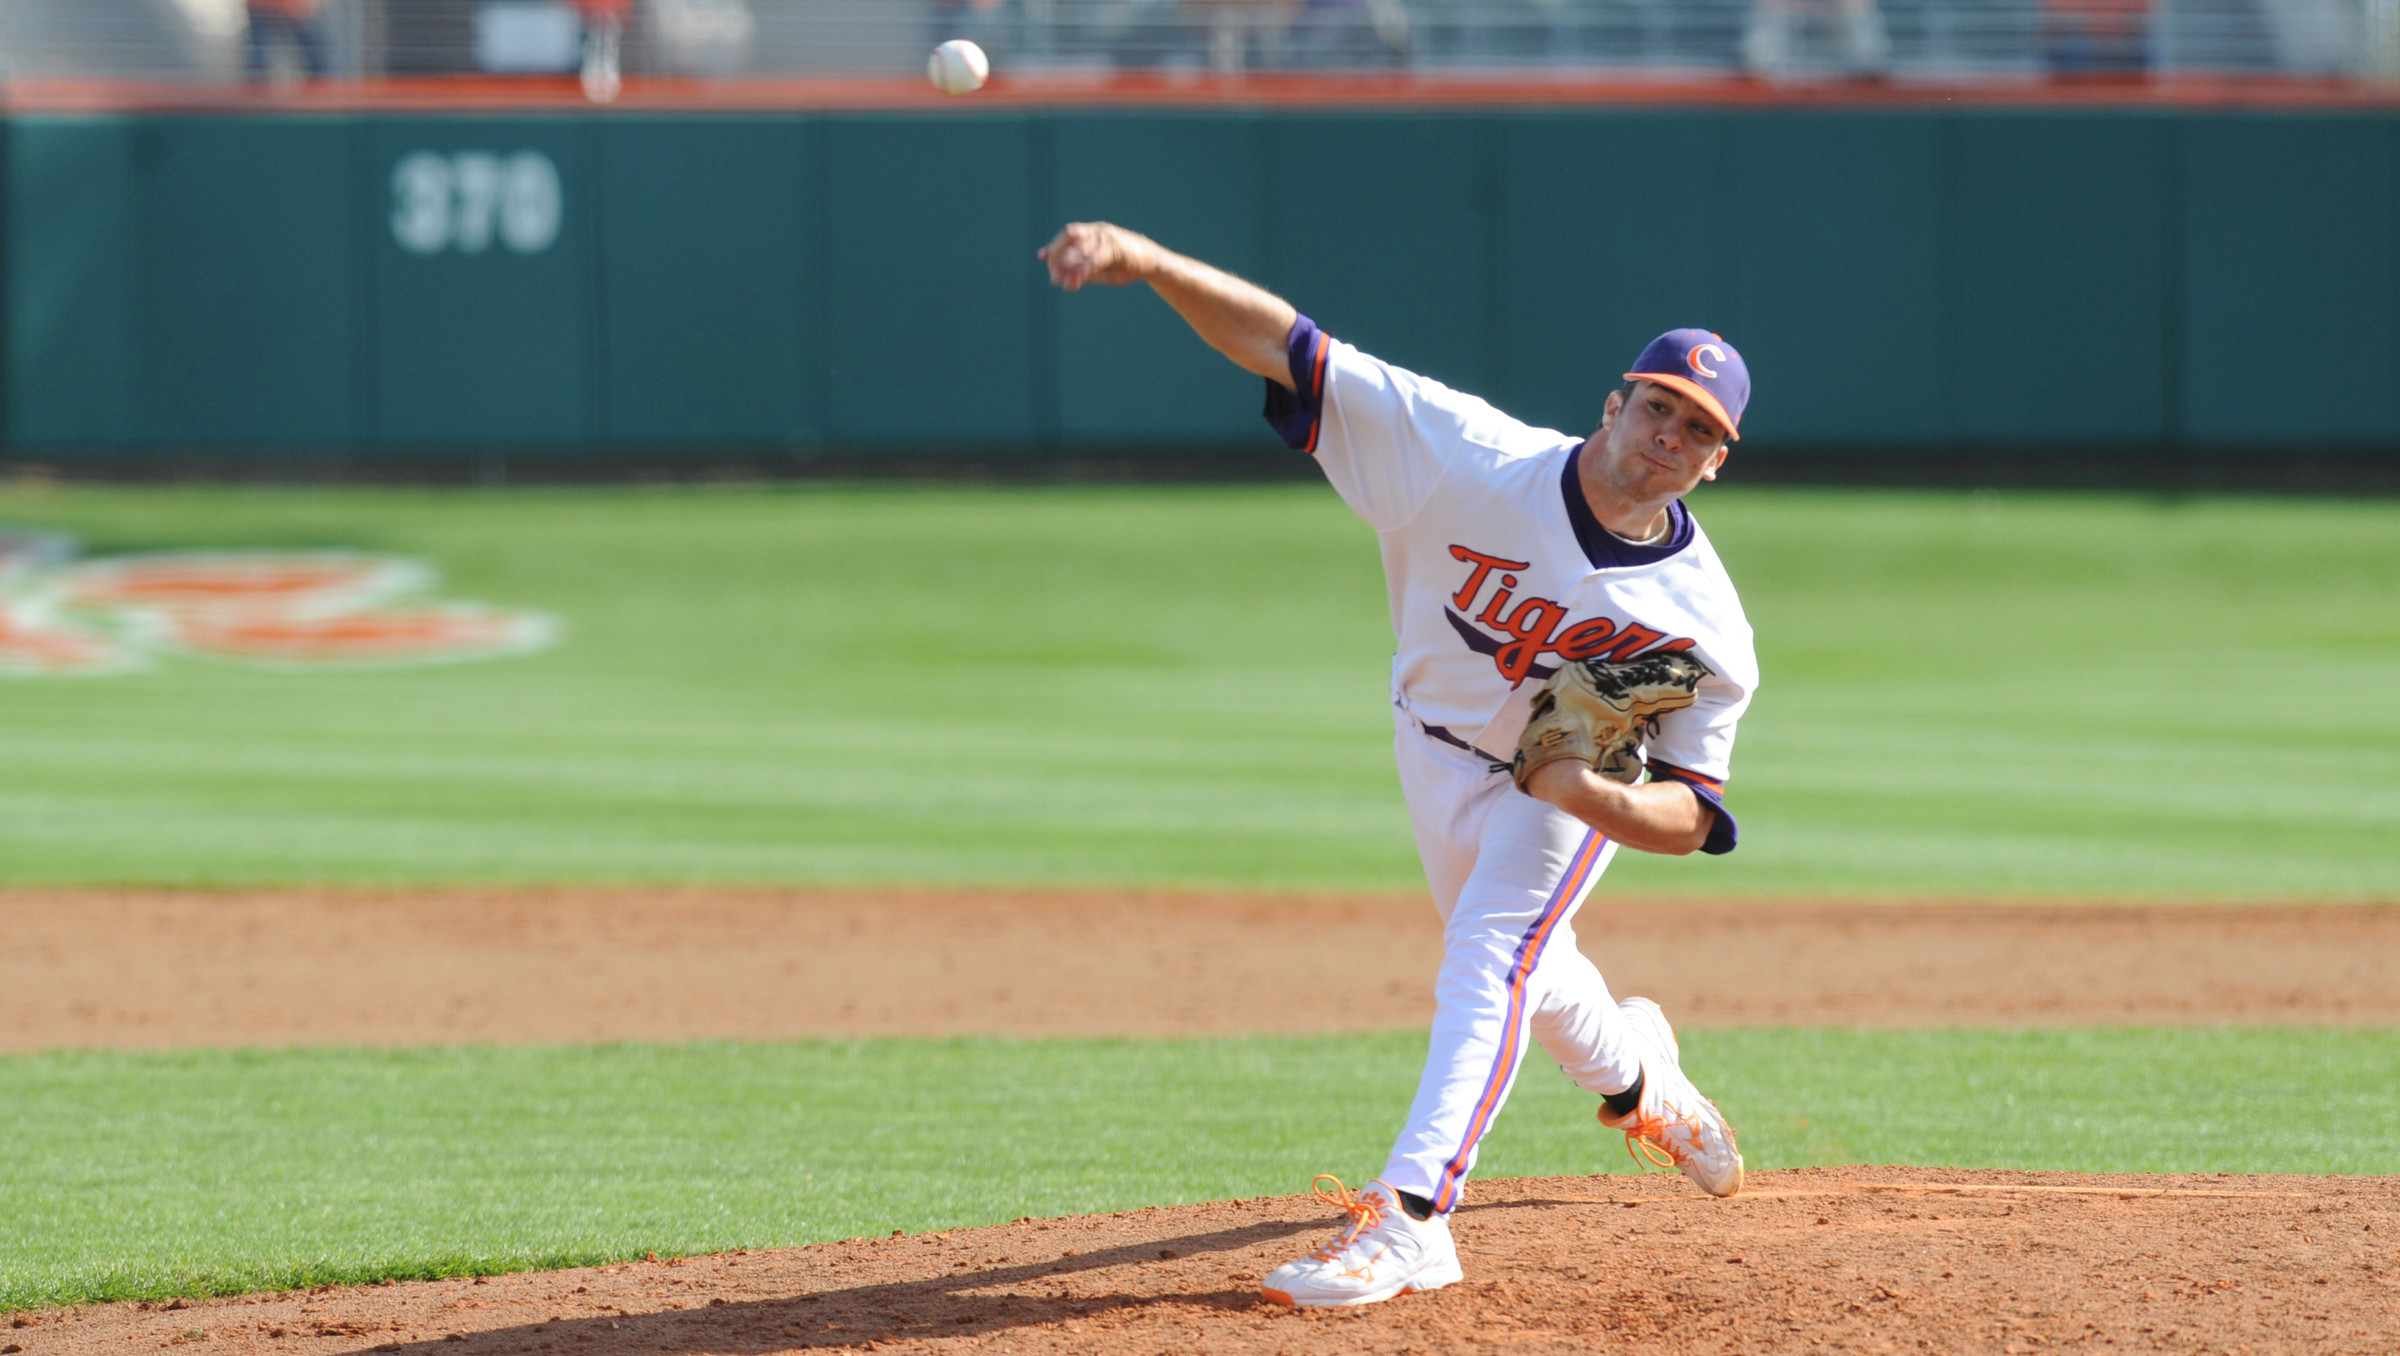 Crownover & Campbell Blank Eagles 1-0 Sunday to Give Tigers Series Sweep